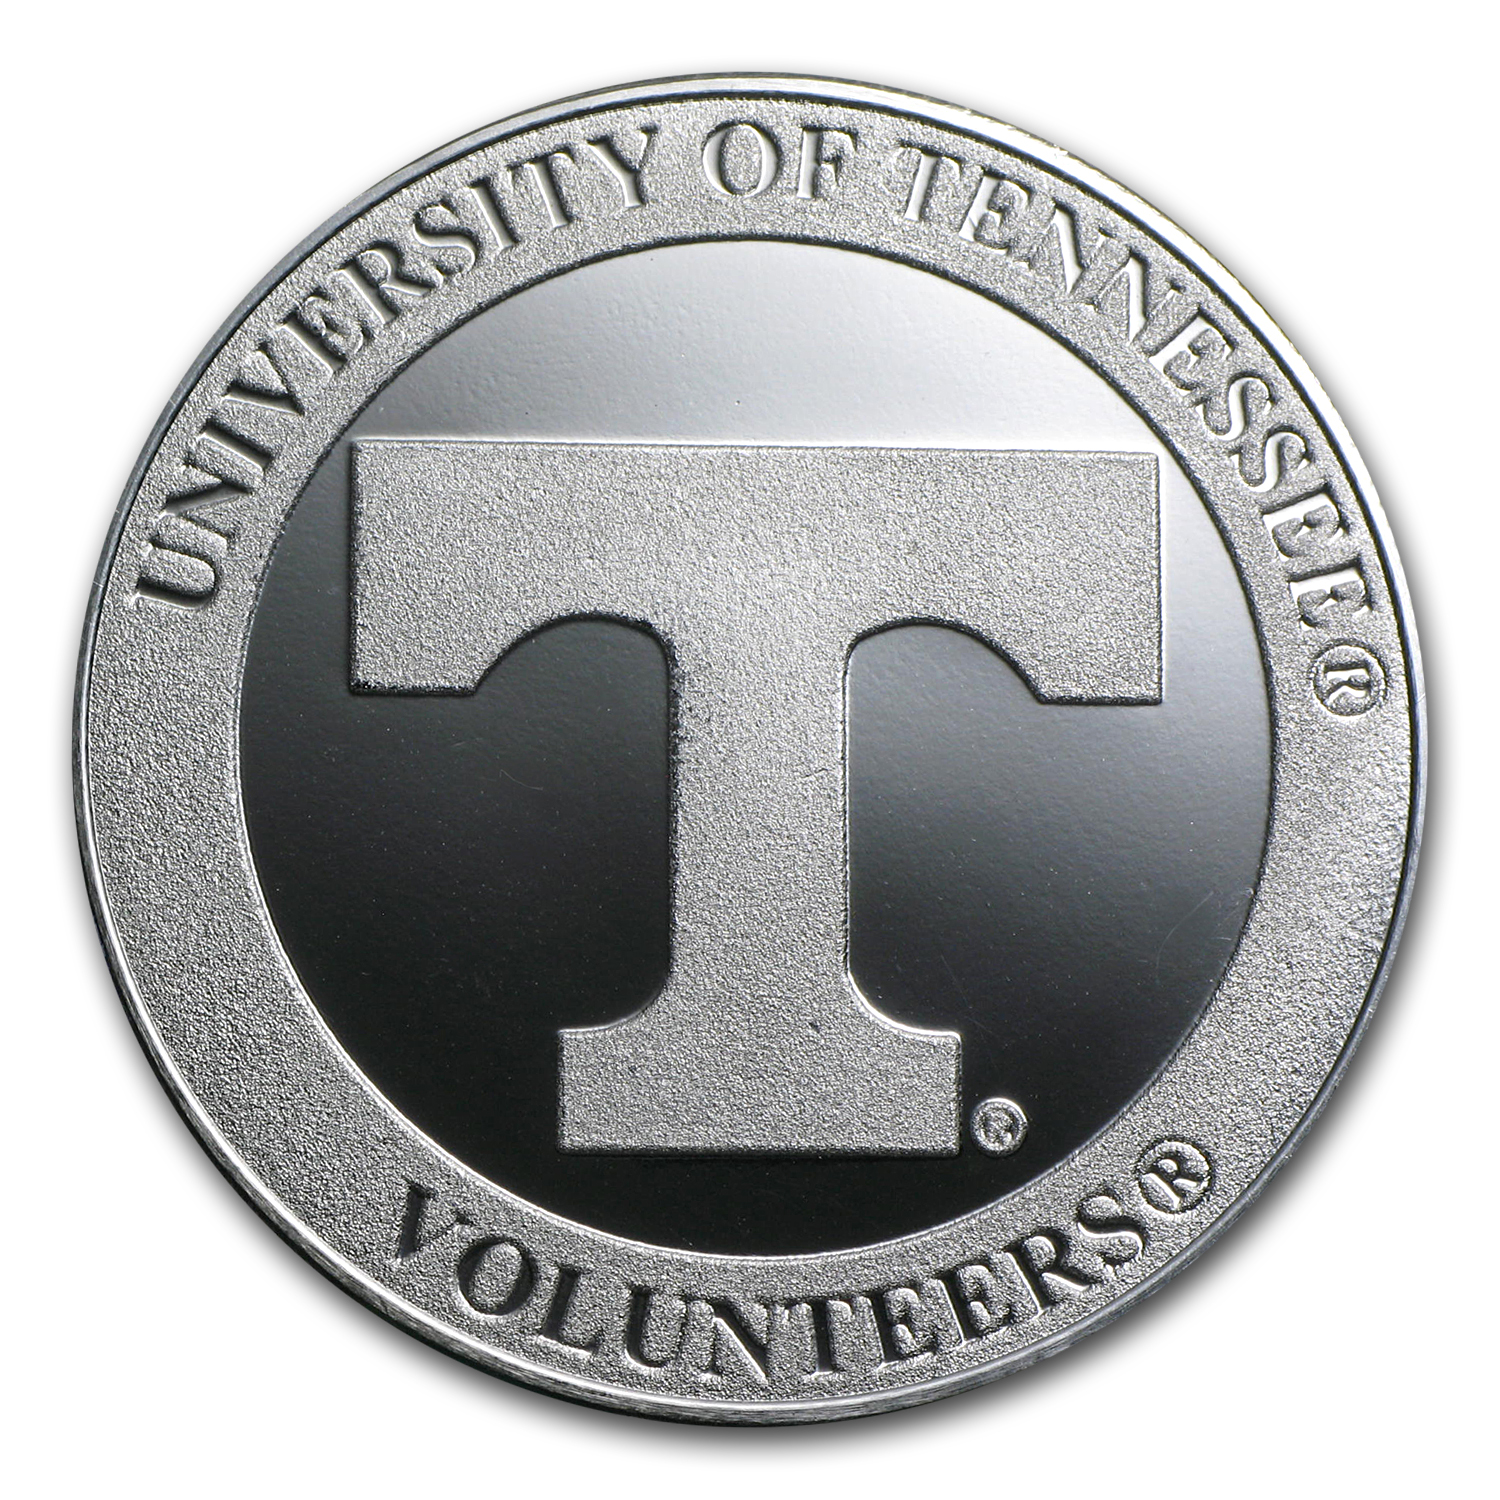 1 oz Silver Round - University of Tennessee